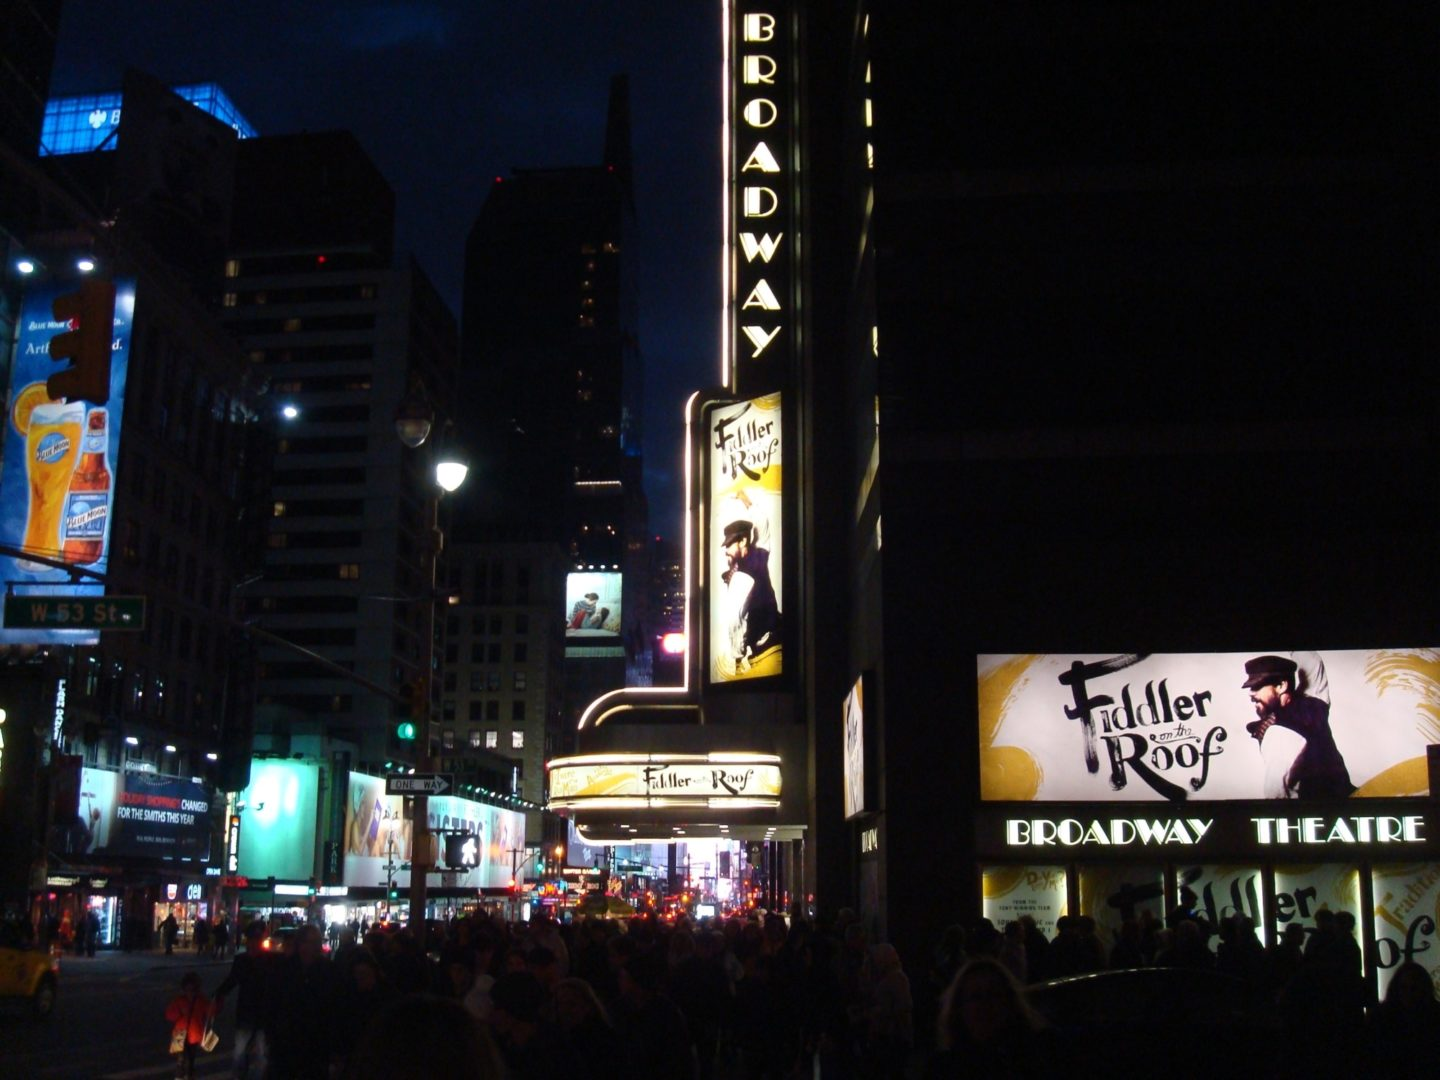 "<p>The marquee for <em>Fiddler, </em>outside the Broadway Theatre in <span class=""caps"">NYC</span> (credit: Michael&nbsp;Yashinsky)</p>"